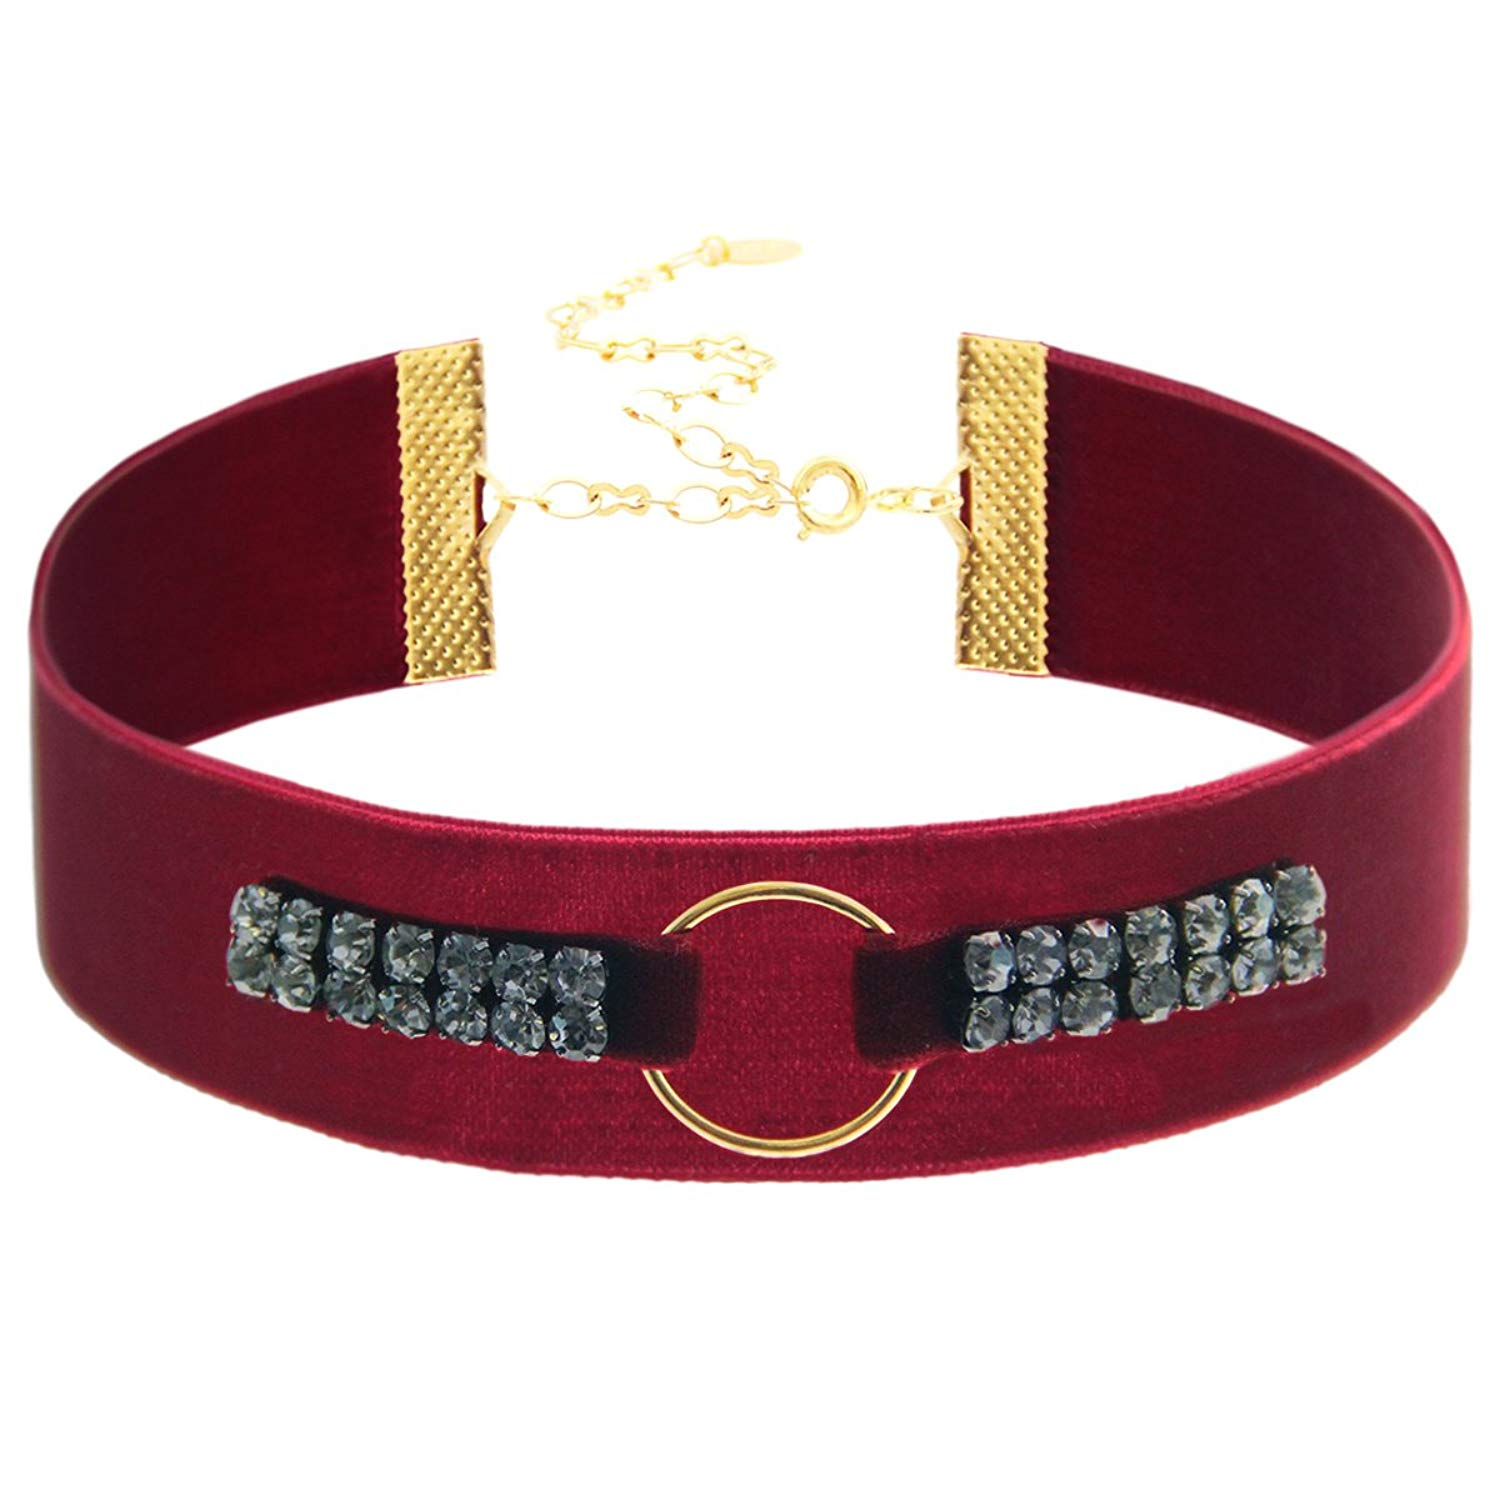 "Choker Necklace Maroon Velvet with Gray Crystal and Circle Choker. <br>18K Gold Plated.Length: 11"" with 4"" extender. Width: 25mm. Circle Size: 20mm in diameter."